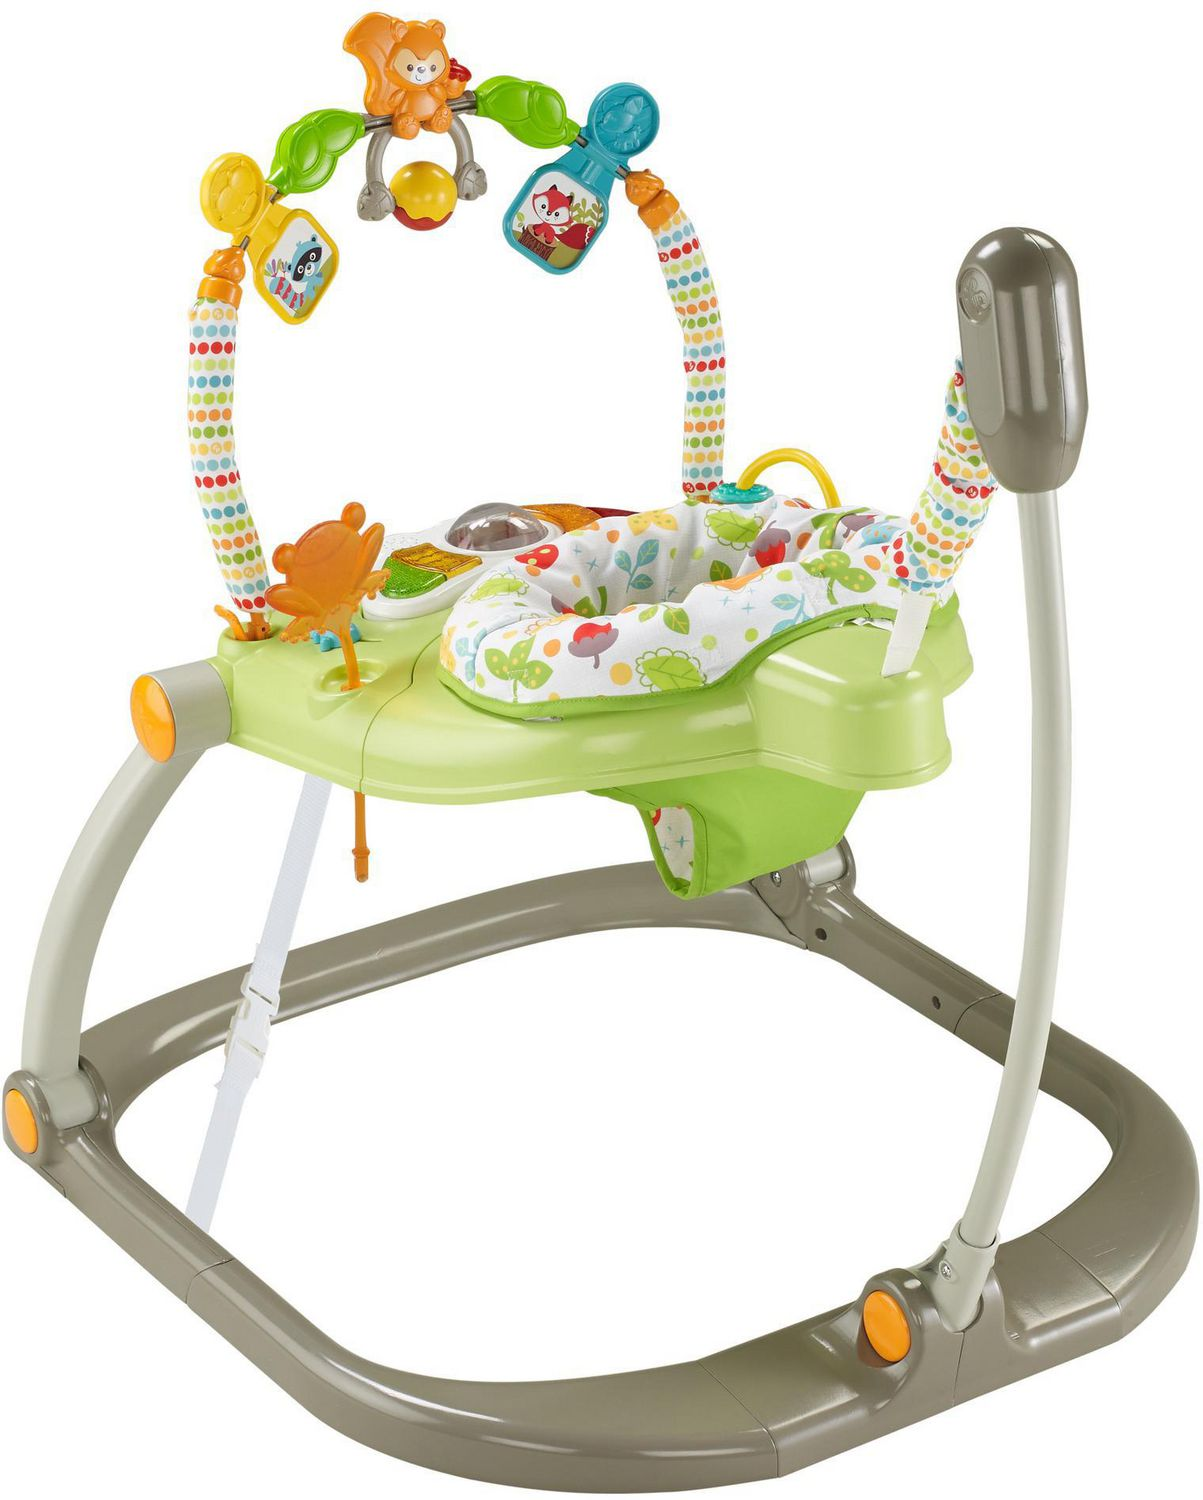 a5273e0235e3 Fisher-Price Woodland Friends Space Saver Jumperoo